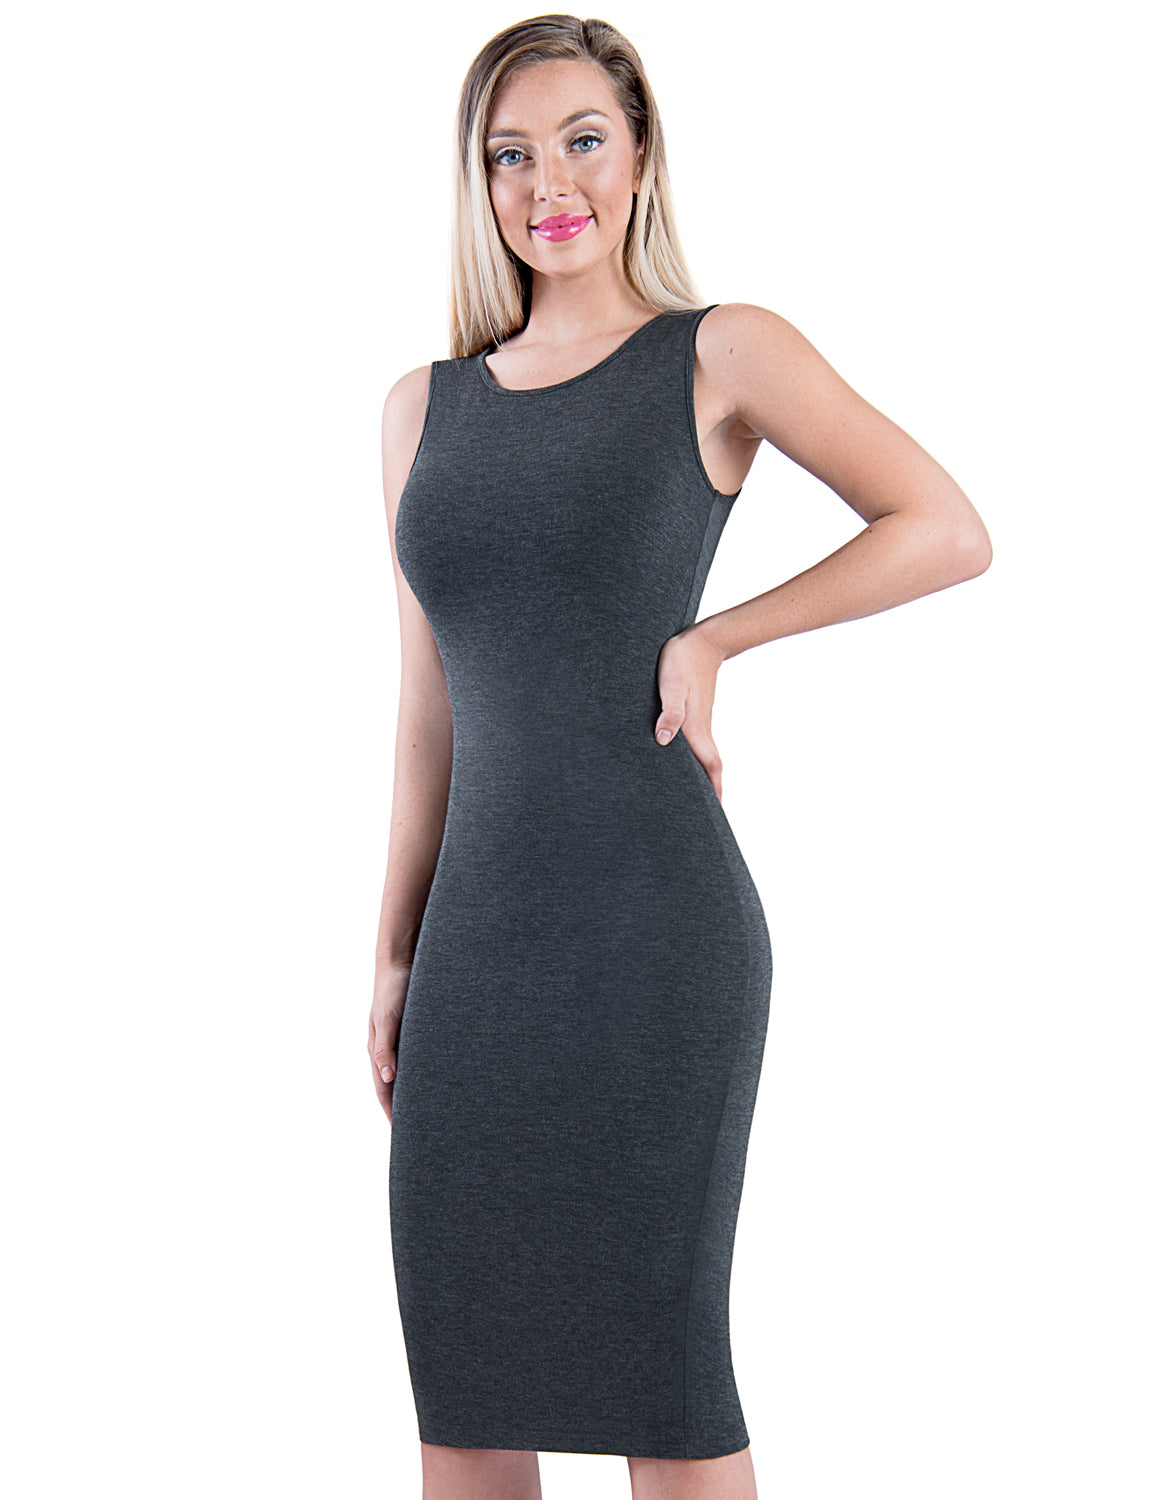 TAM WARE Women's Classic Slim Fit Sleeveless Midi Dress